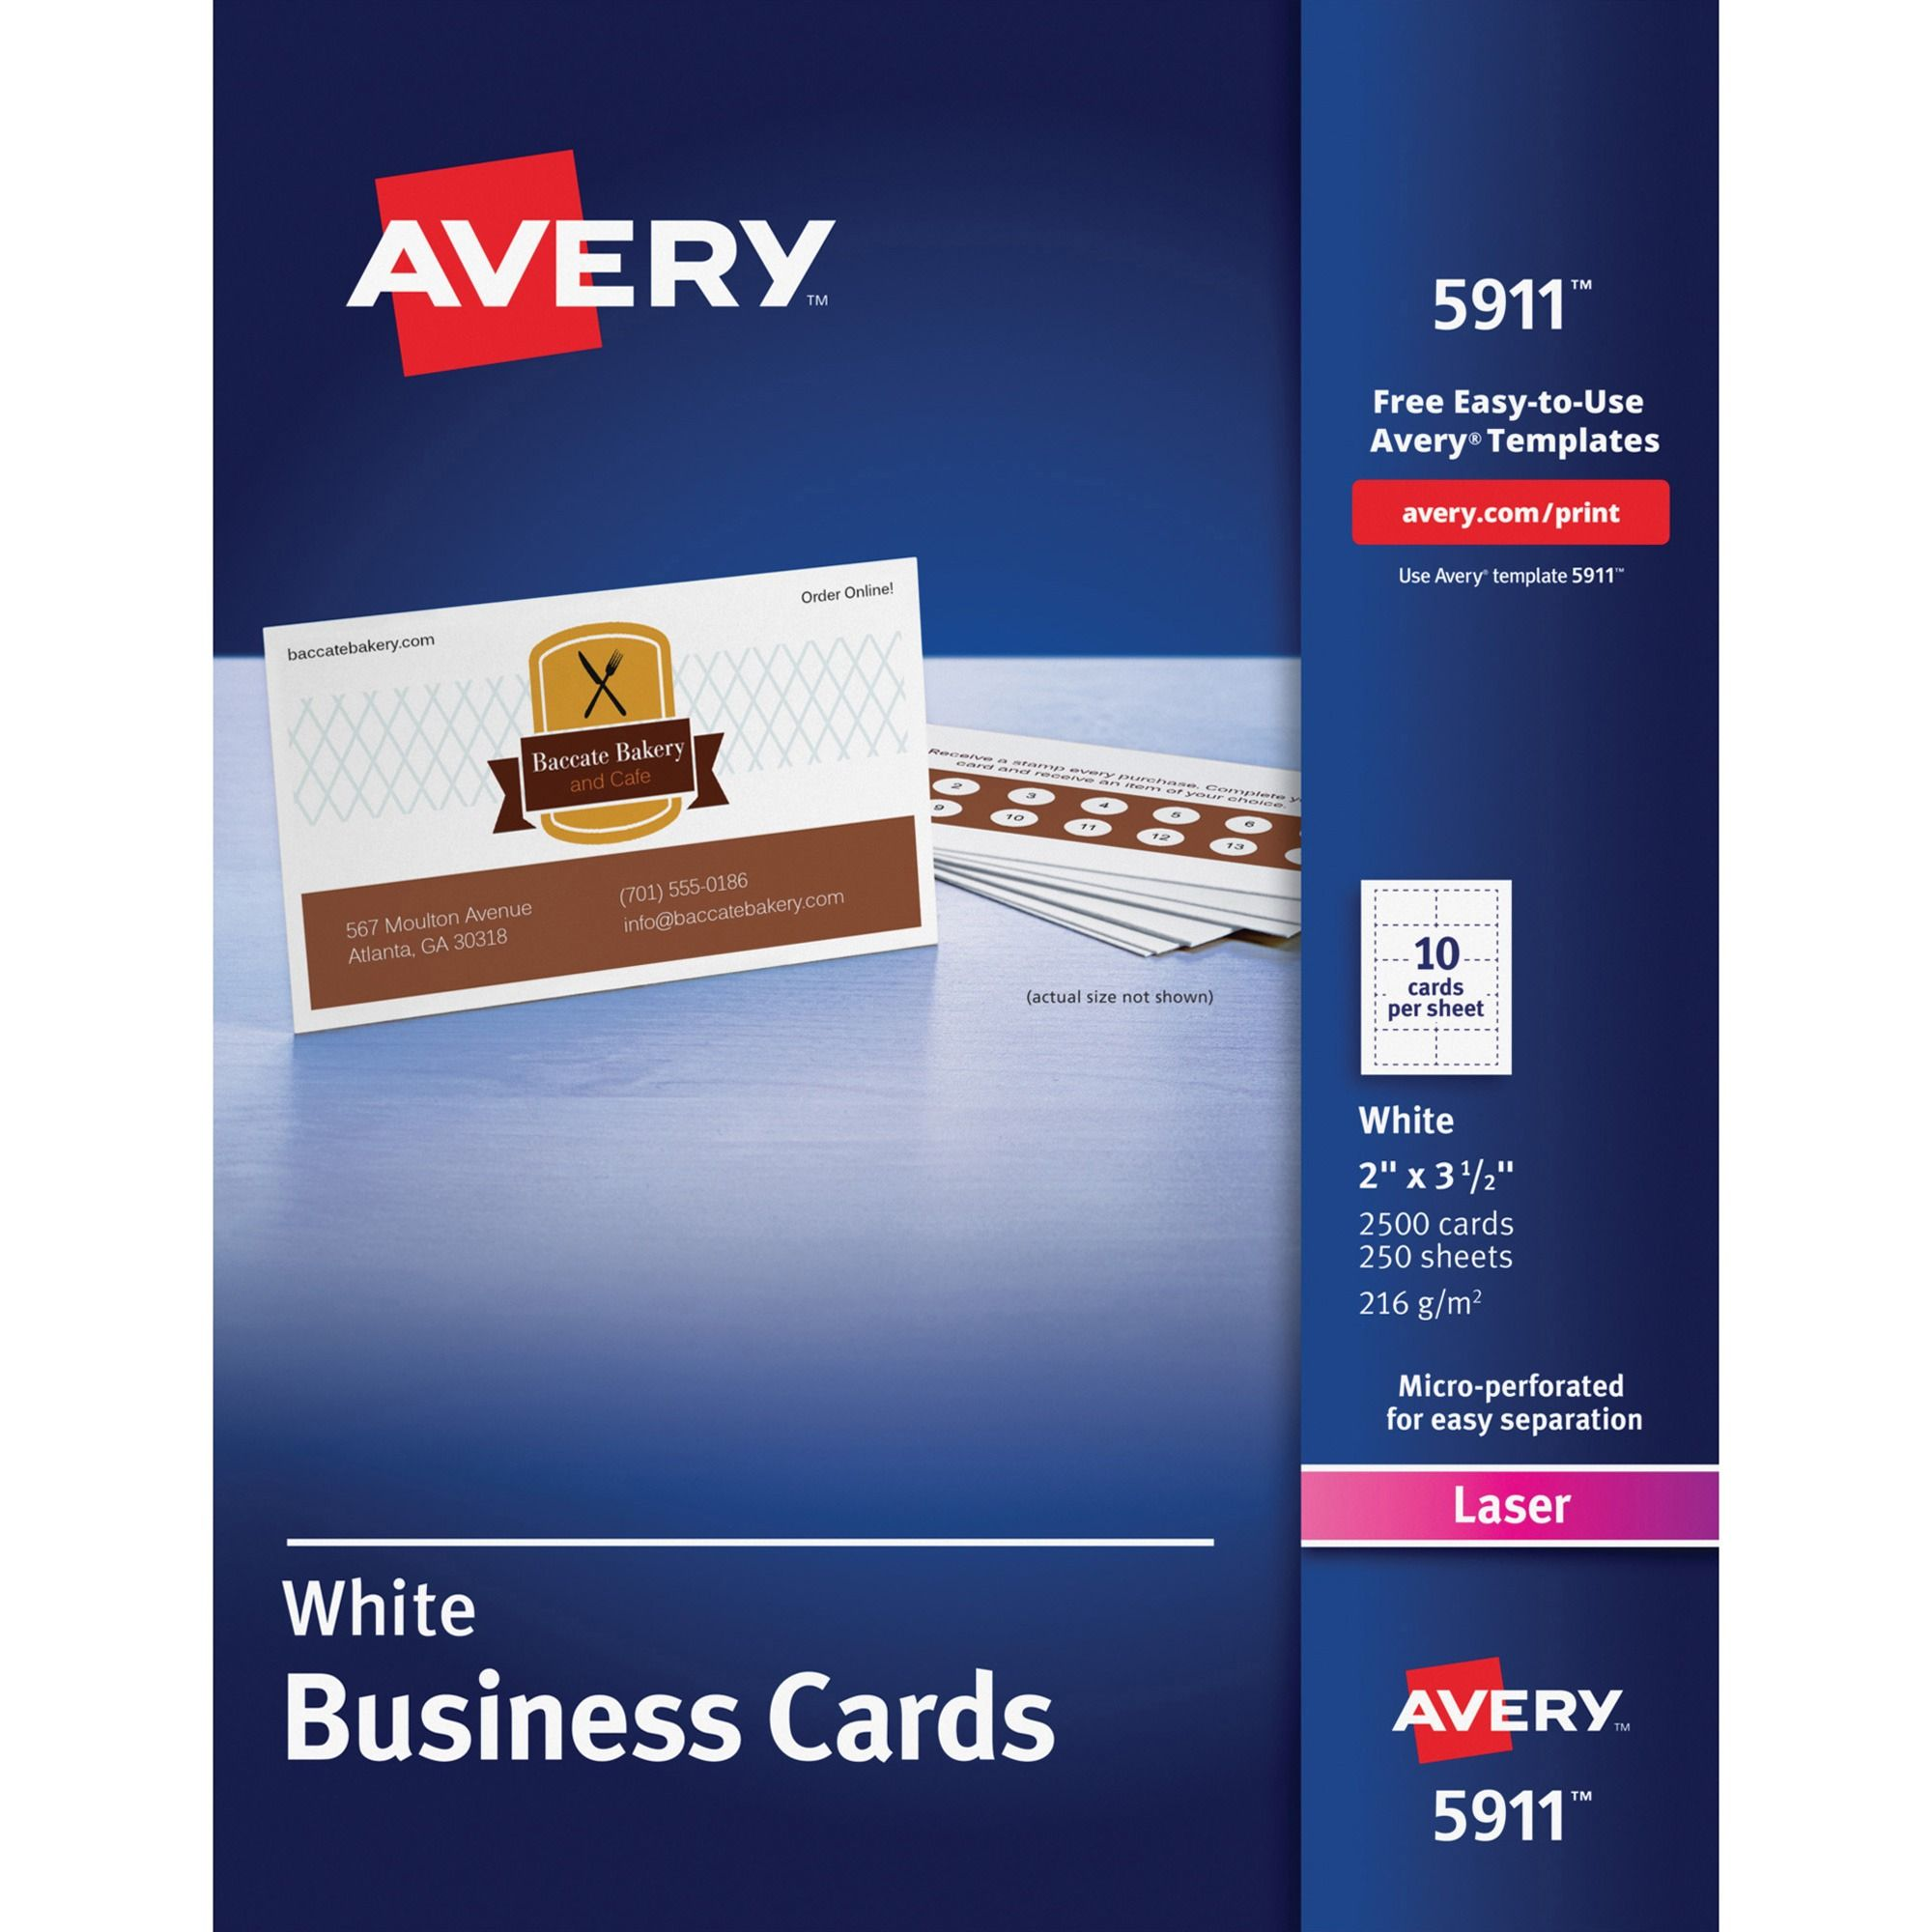 Avery Business Card App Sowie Avery Visitenkarten Blanko